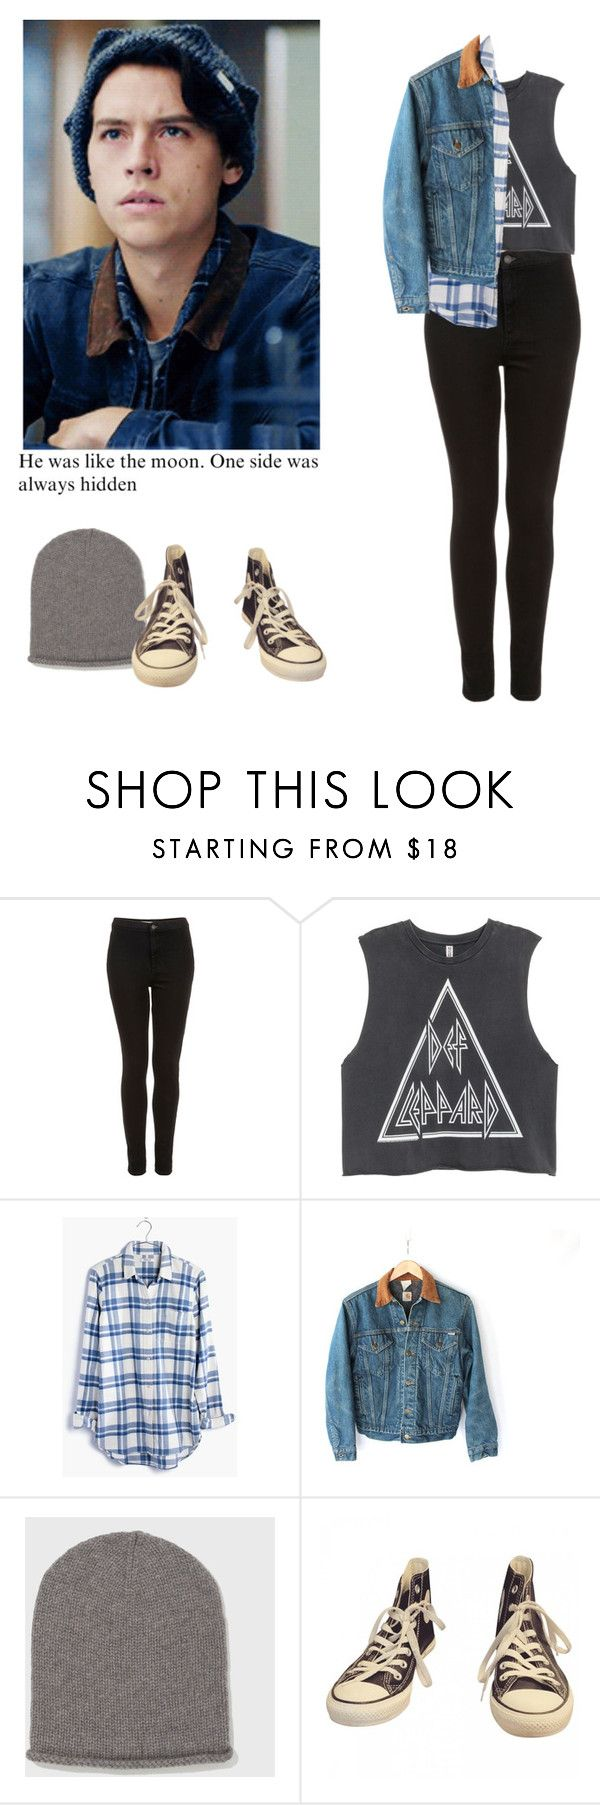 """Jughead Jones - Riverdale"" by shadyannon ❤ liked on Polyvore featuring Topshop, H&M, Madewell, Carhartt and Converse"